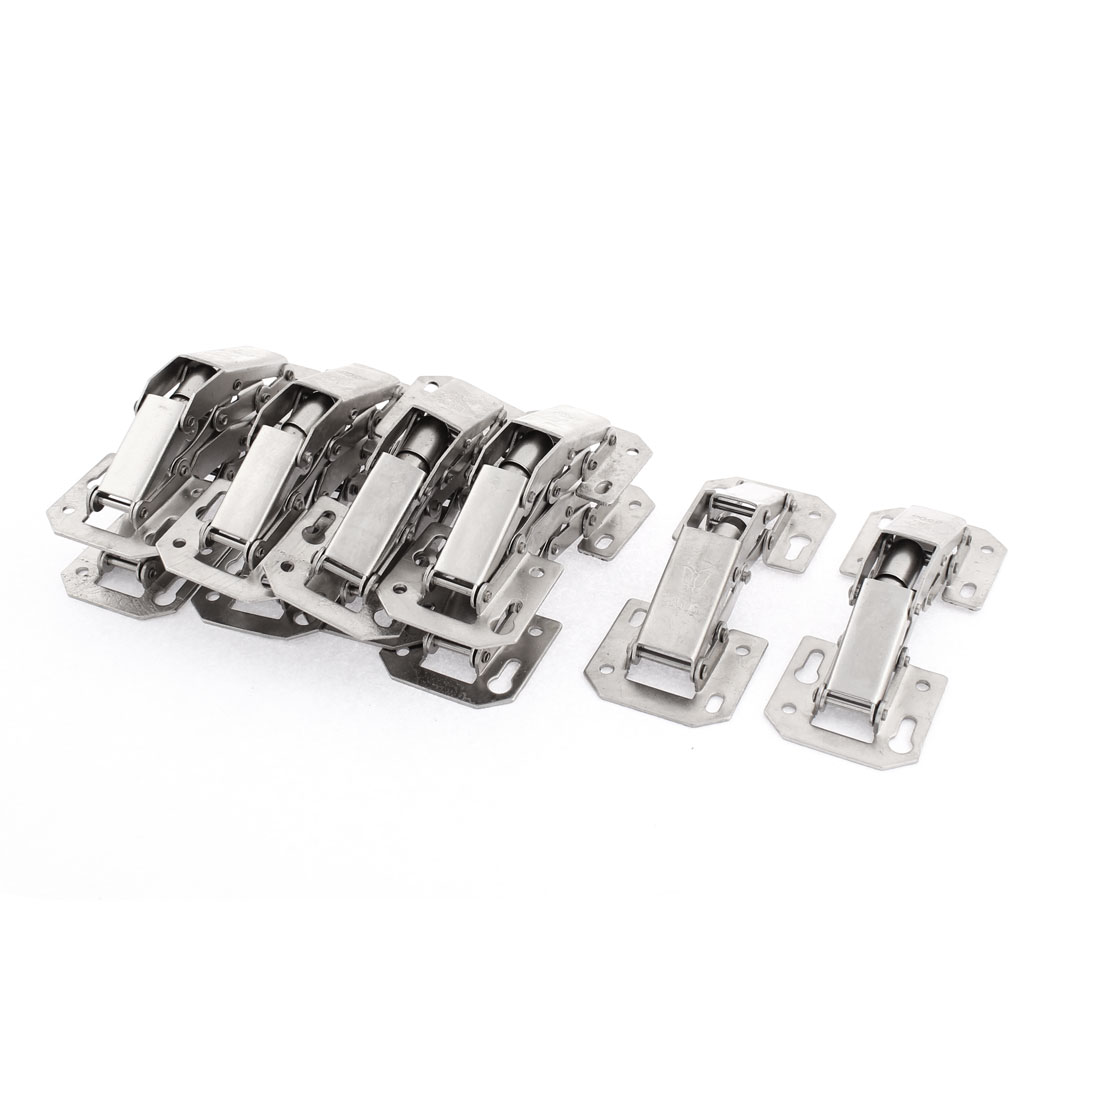 Home Cupboard Cabinet Door 90 Degree Concealed Metal Hinge 10 Pcs